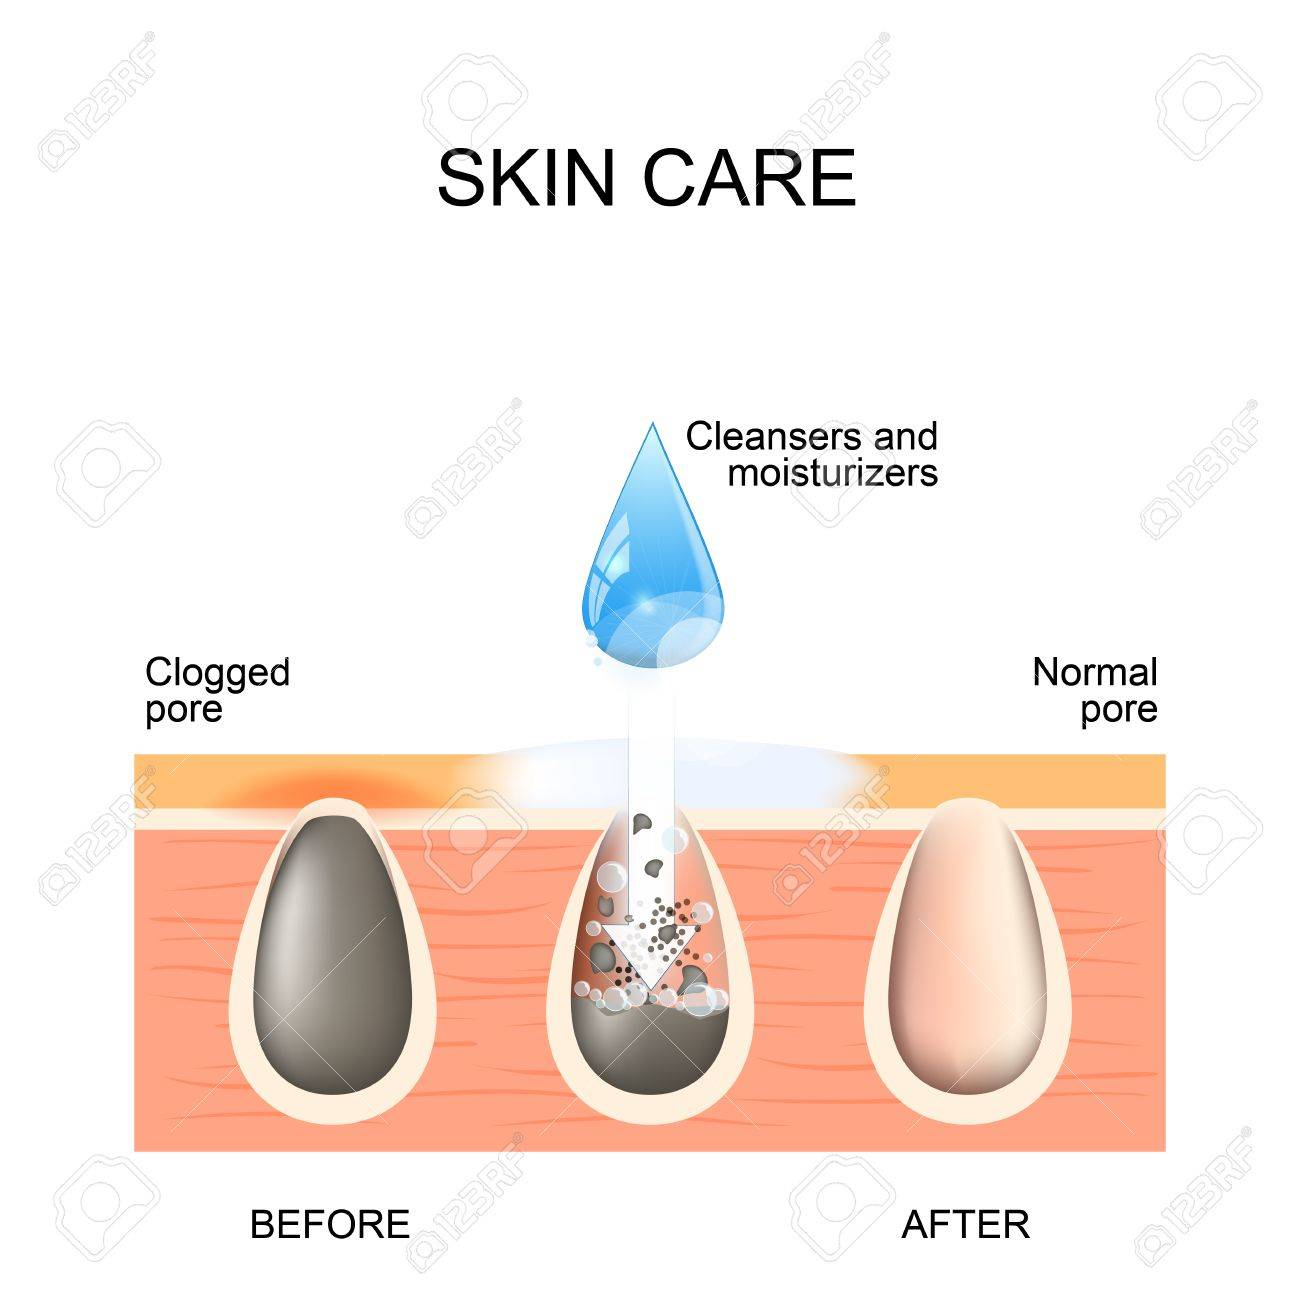 hight resolution of skin care clogged and normal pores before and after using scrubs blackhead diagram clogged and normal